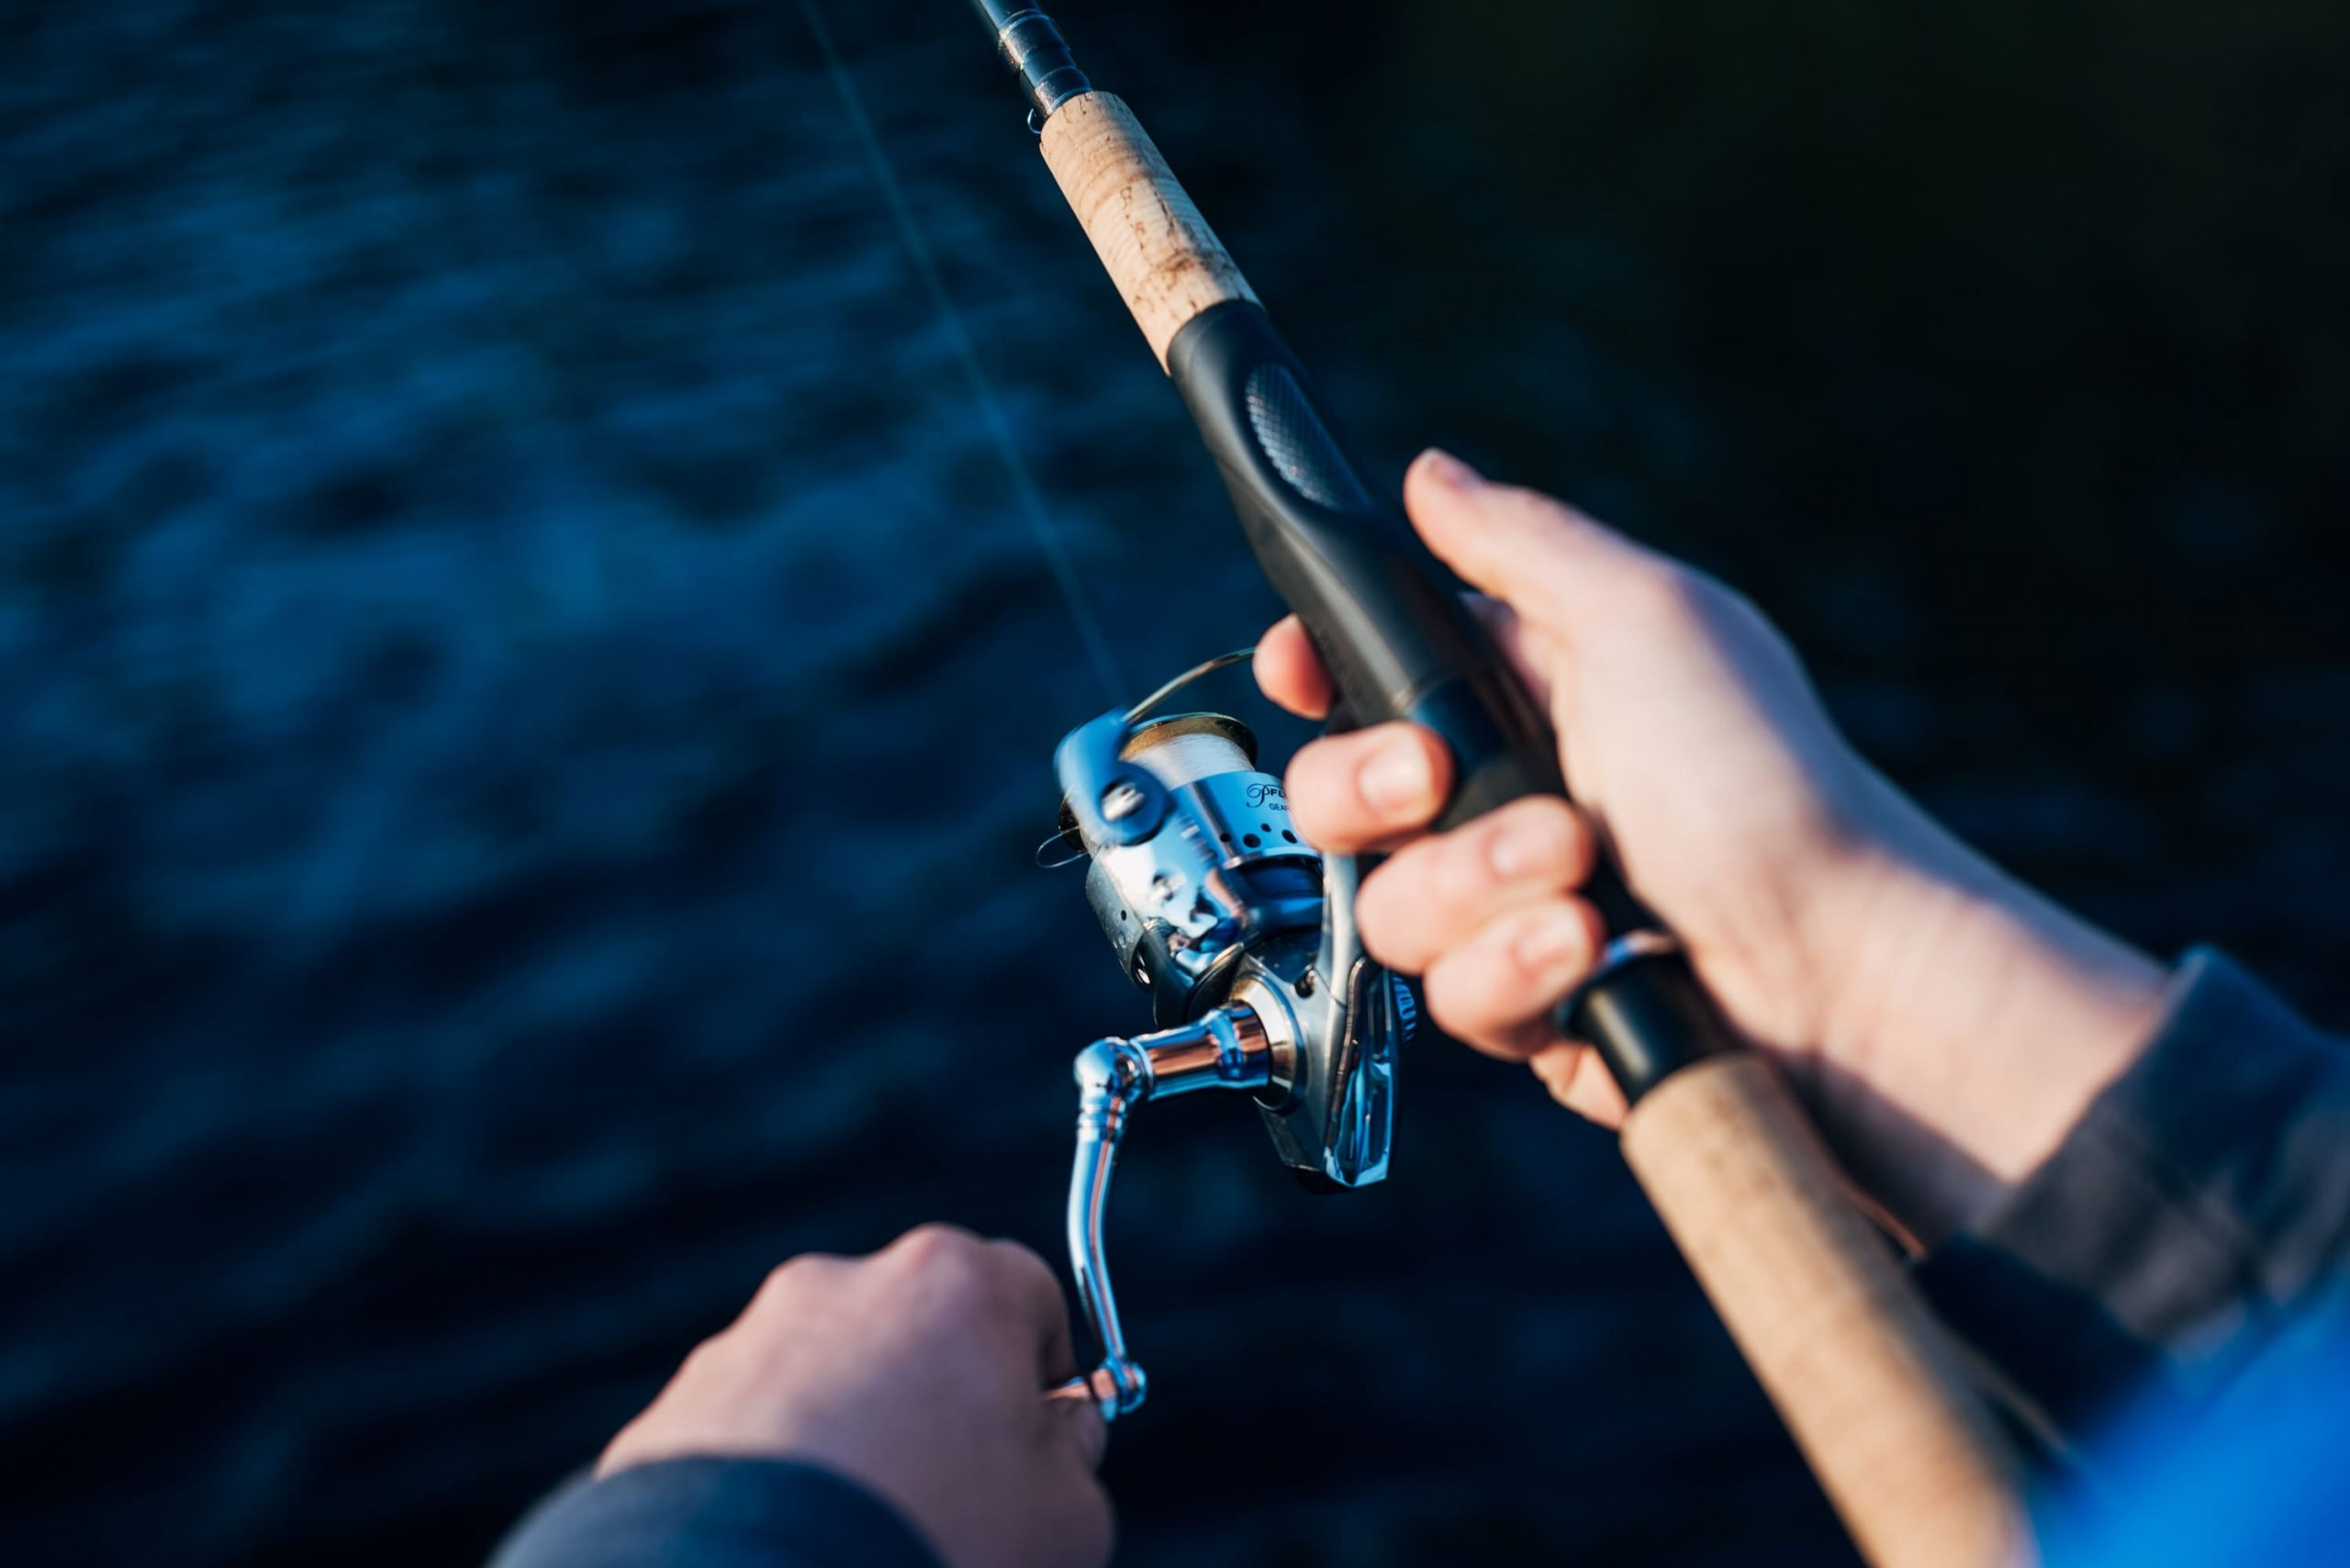 photo-of-person-holding-fishing-rod-2473502